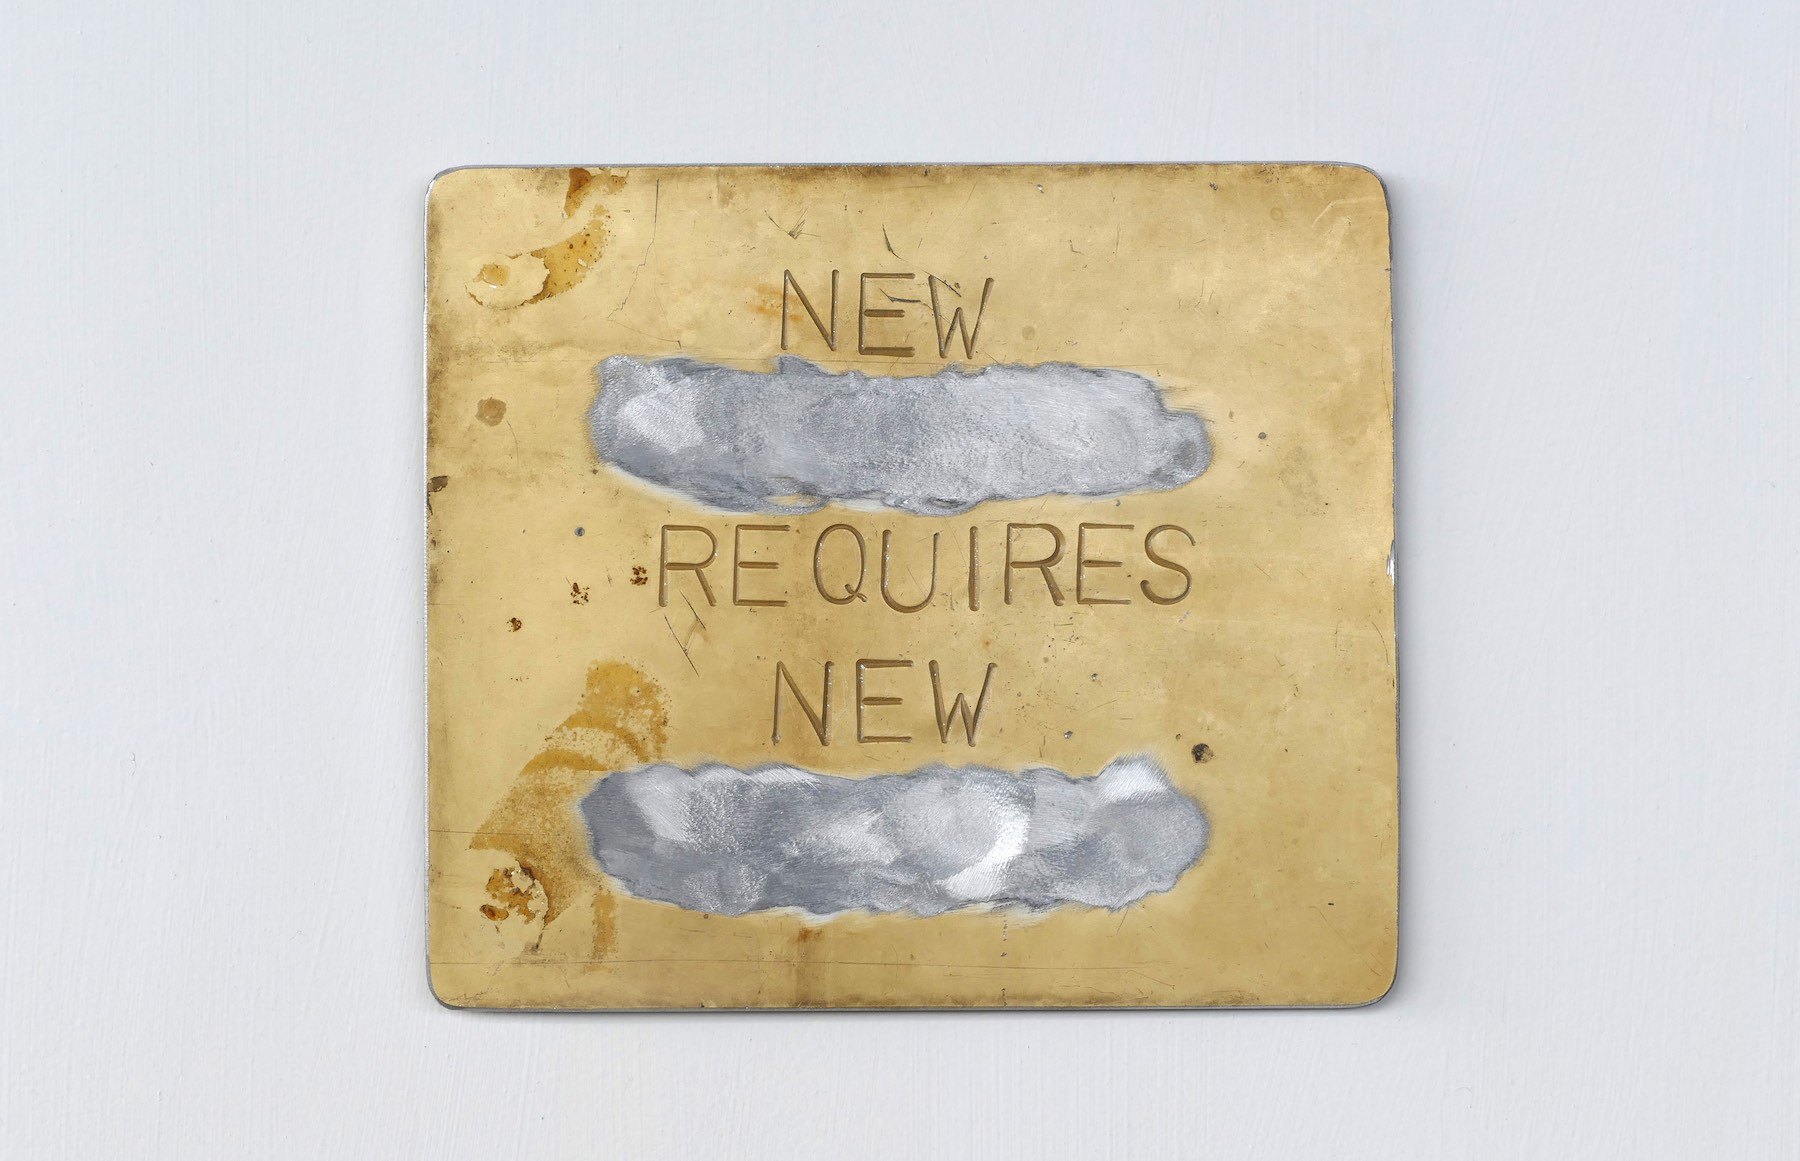 NEW____REQUIRES NEW_____